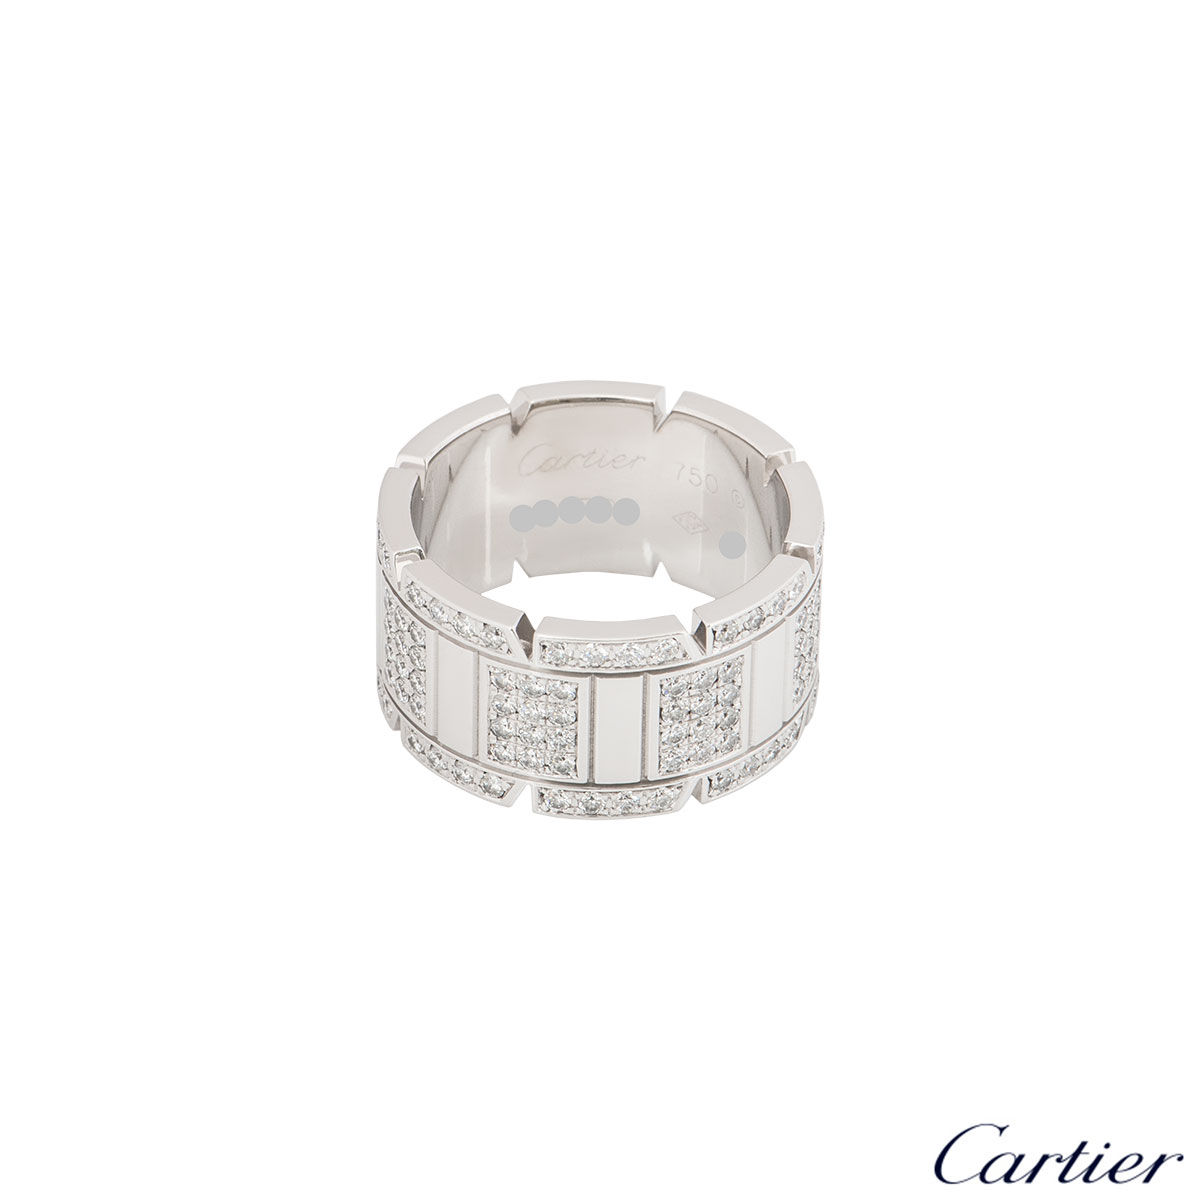 Cartier White Gold Tank Francaise Ring